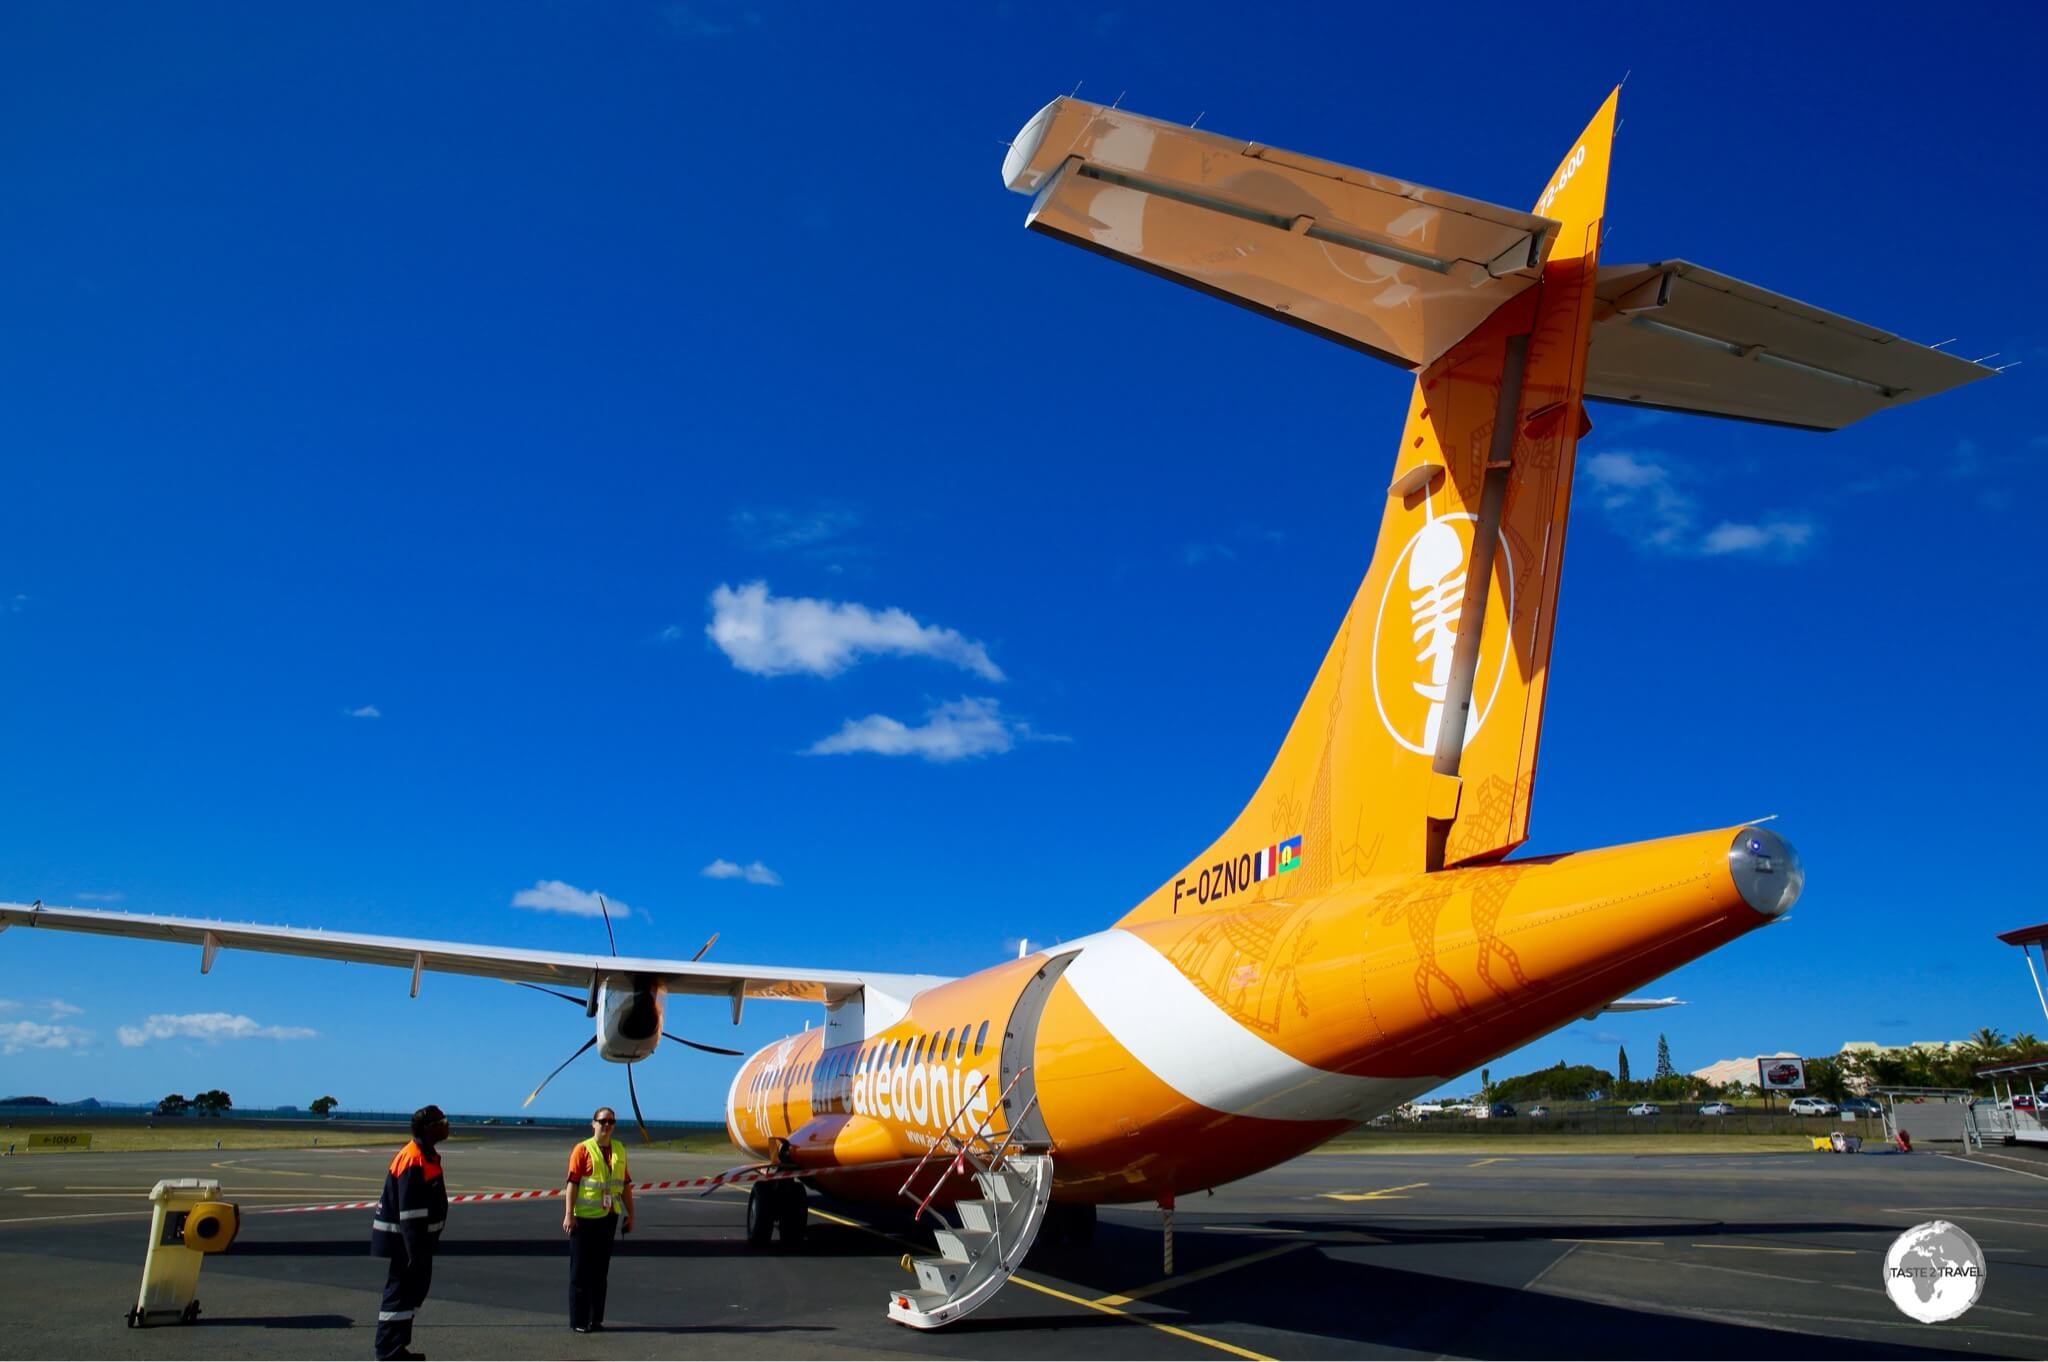 My Air Caledonie flight to the Isle of Pines from Magenta airport.